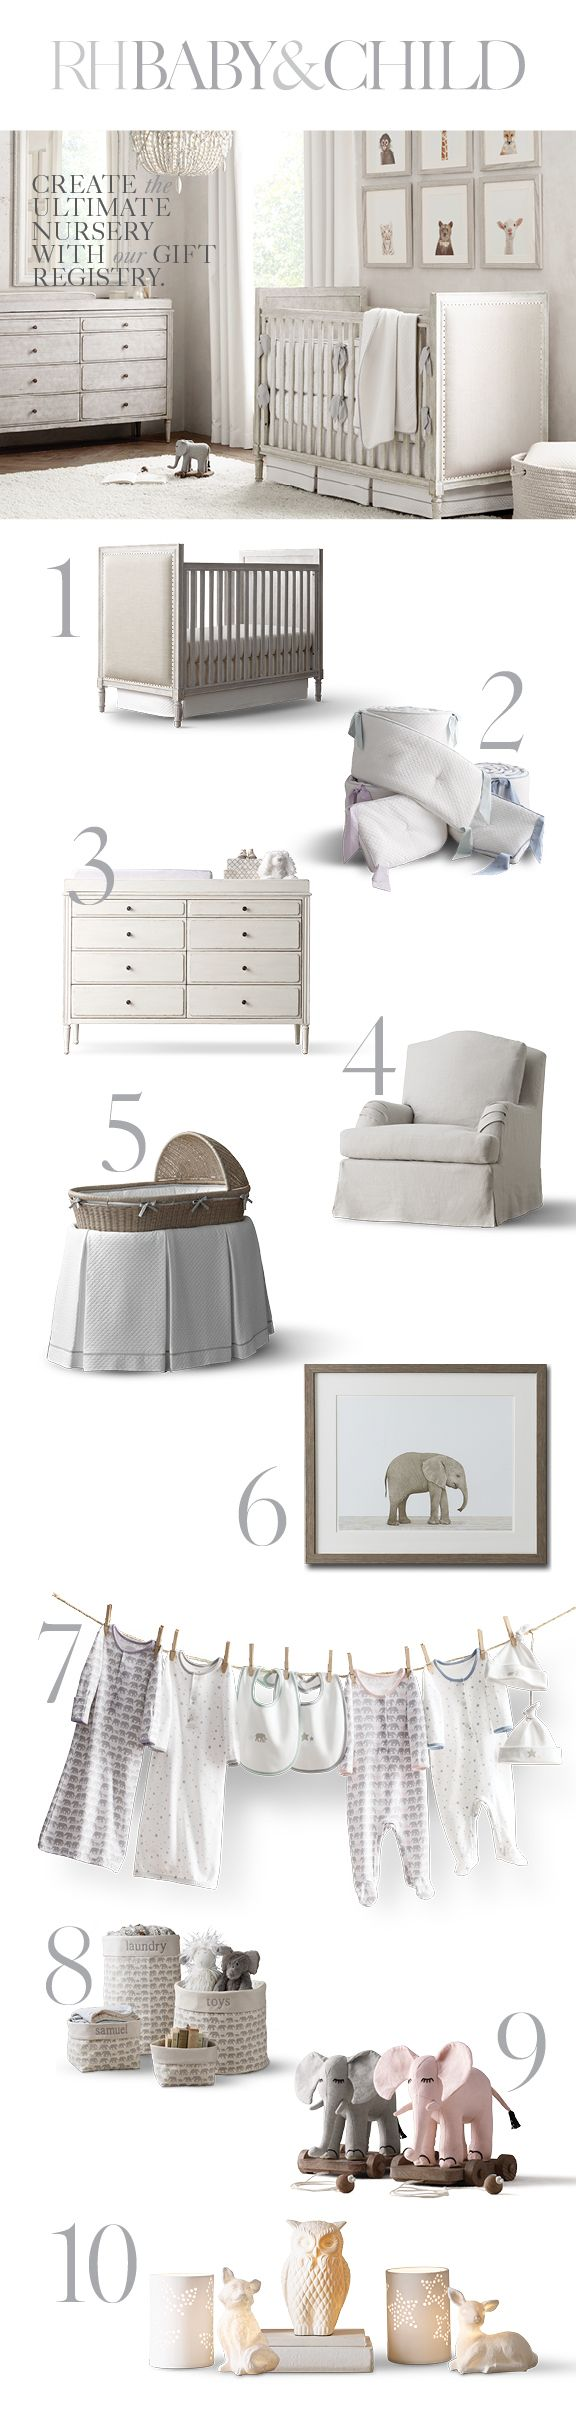 From furnishings to accessories, bedding to decor, we've got everything you need to design your dream nursery. Save 25% on everything with the RH Members Program. Create a registry with RH Baby & Child.